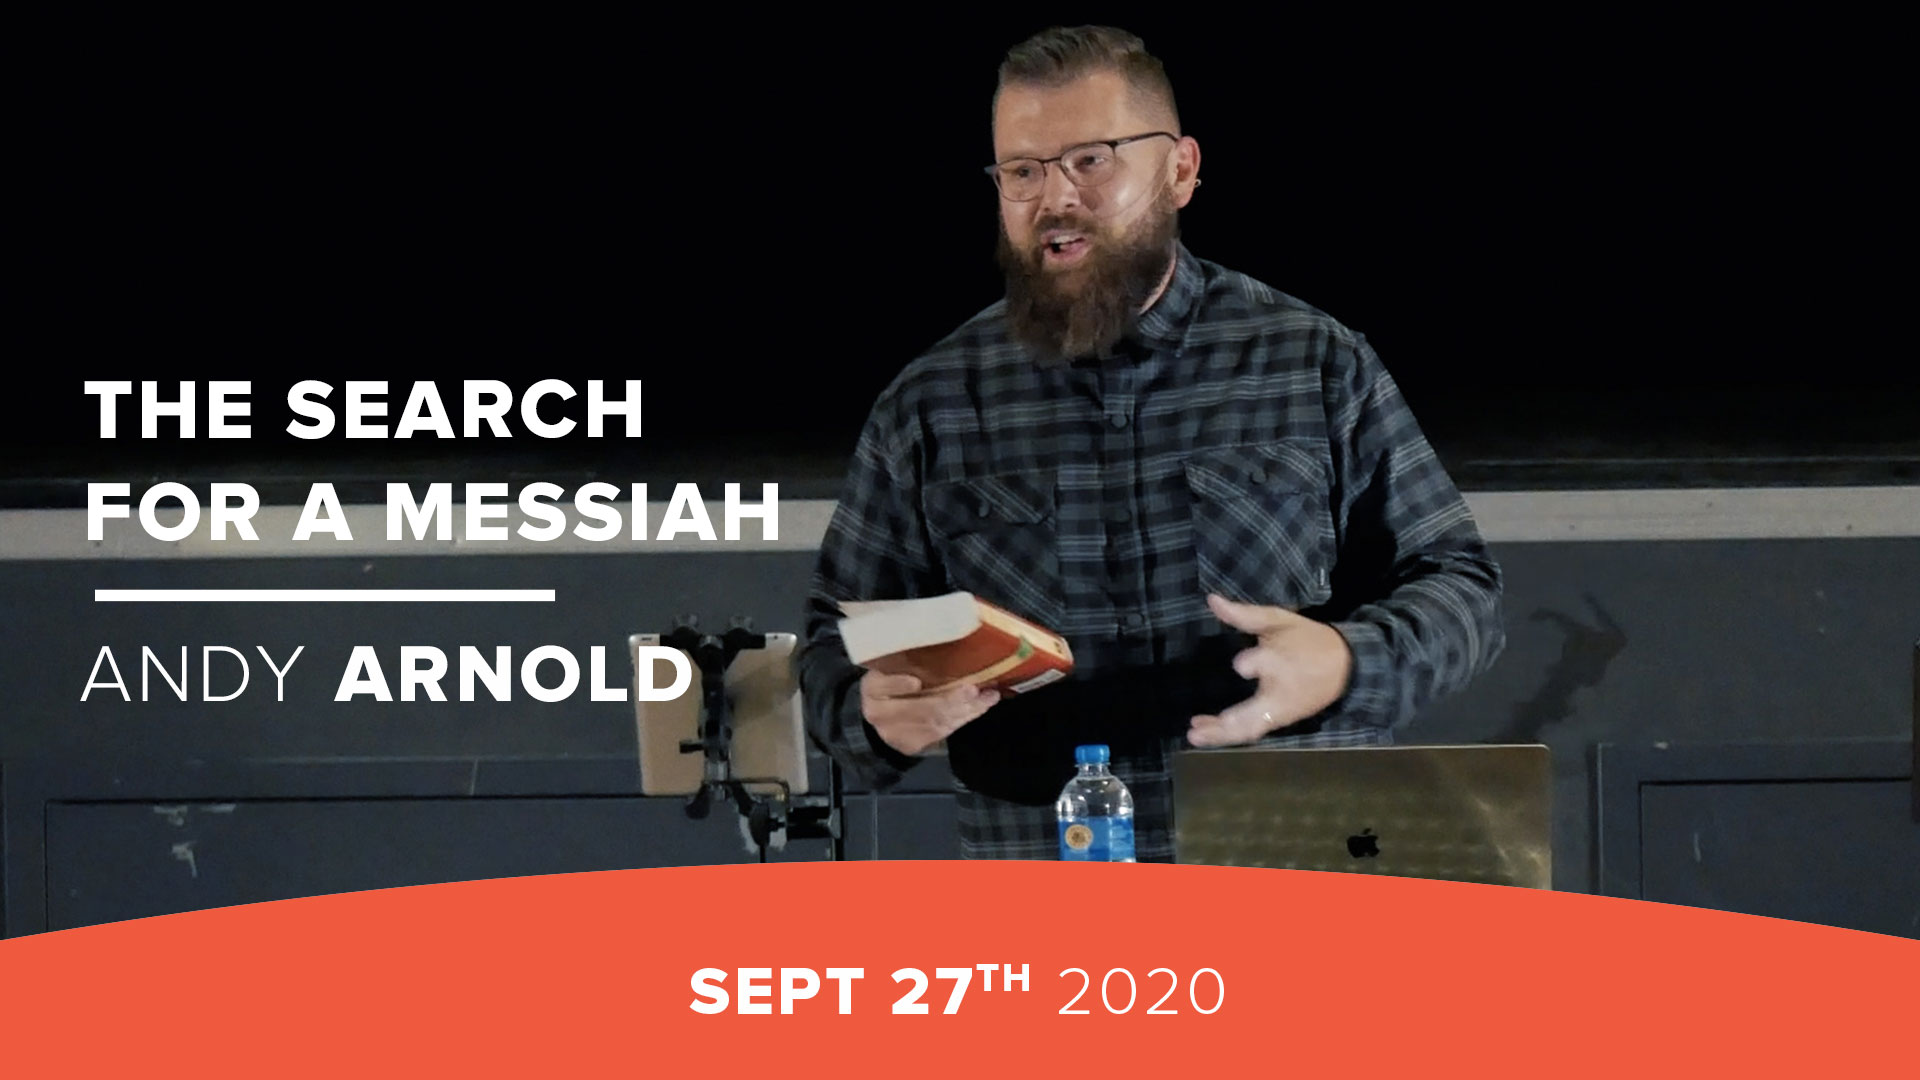 The Search For A Messiah